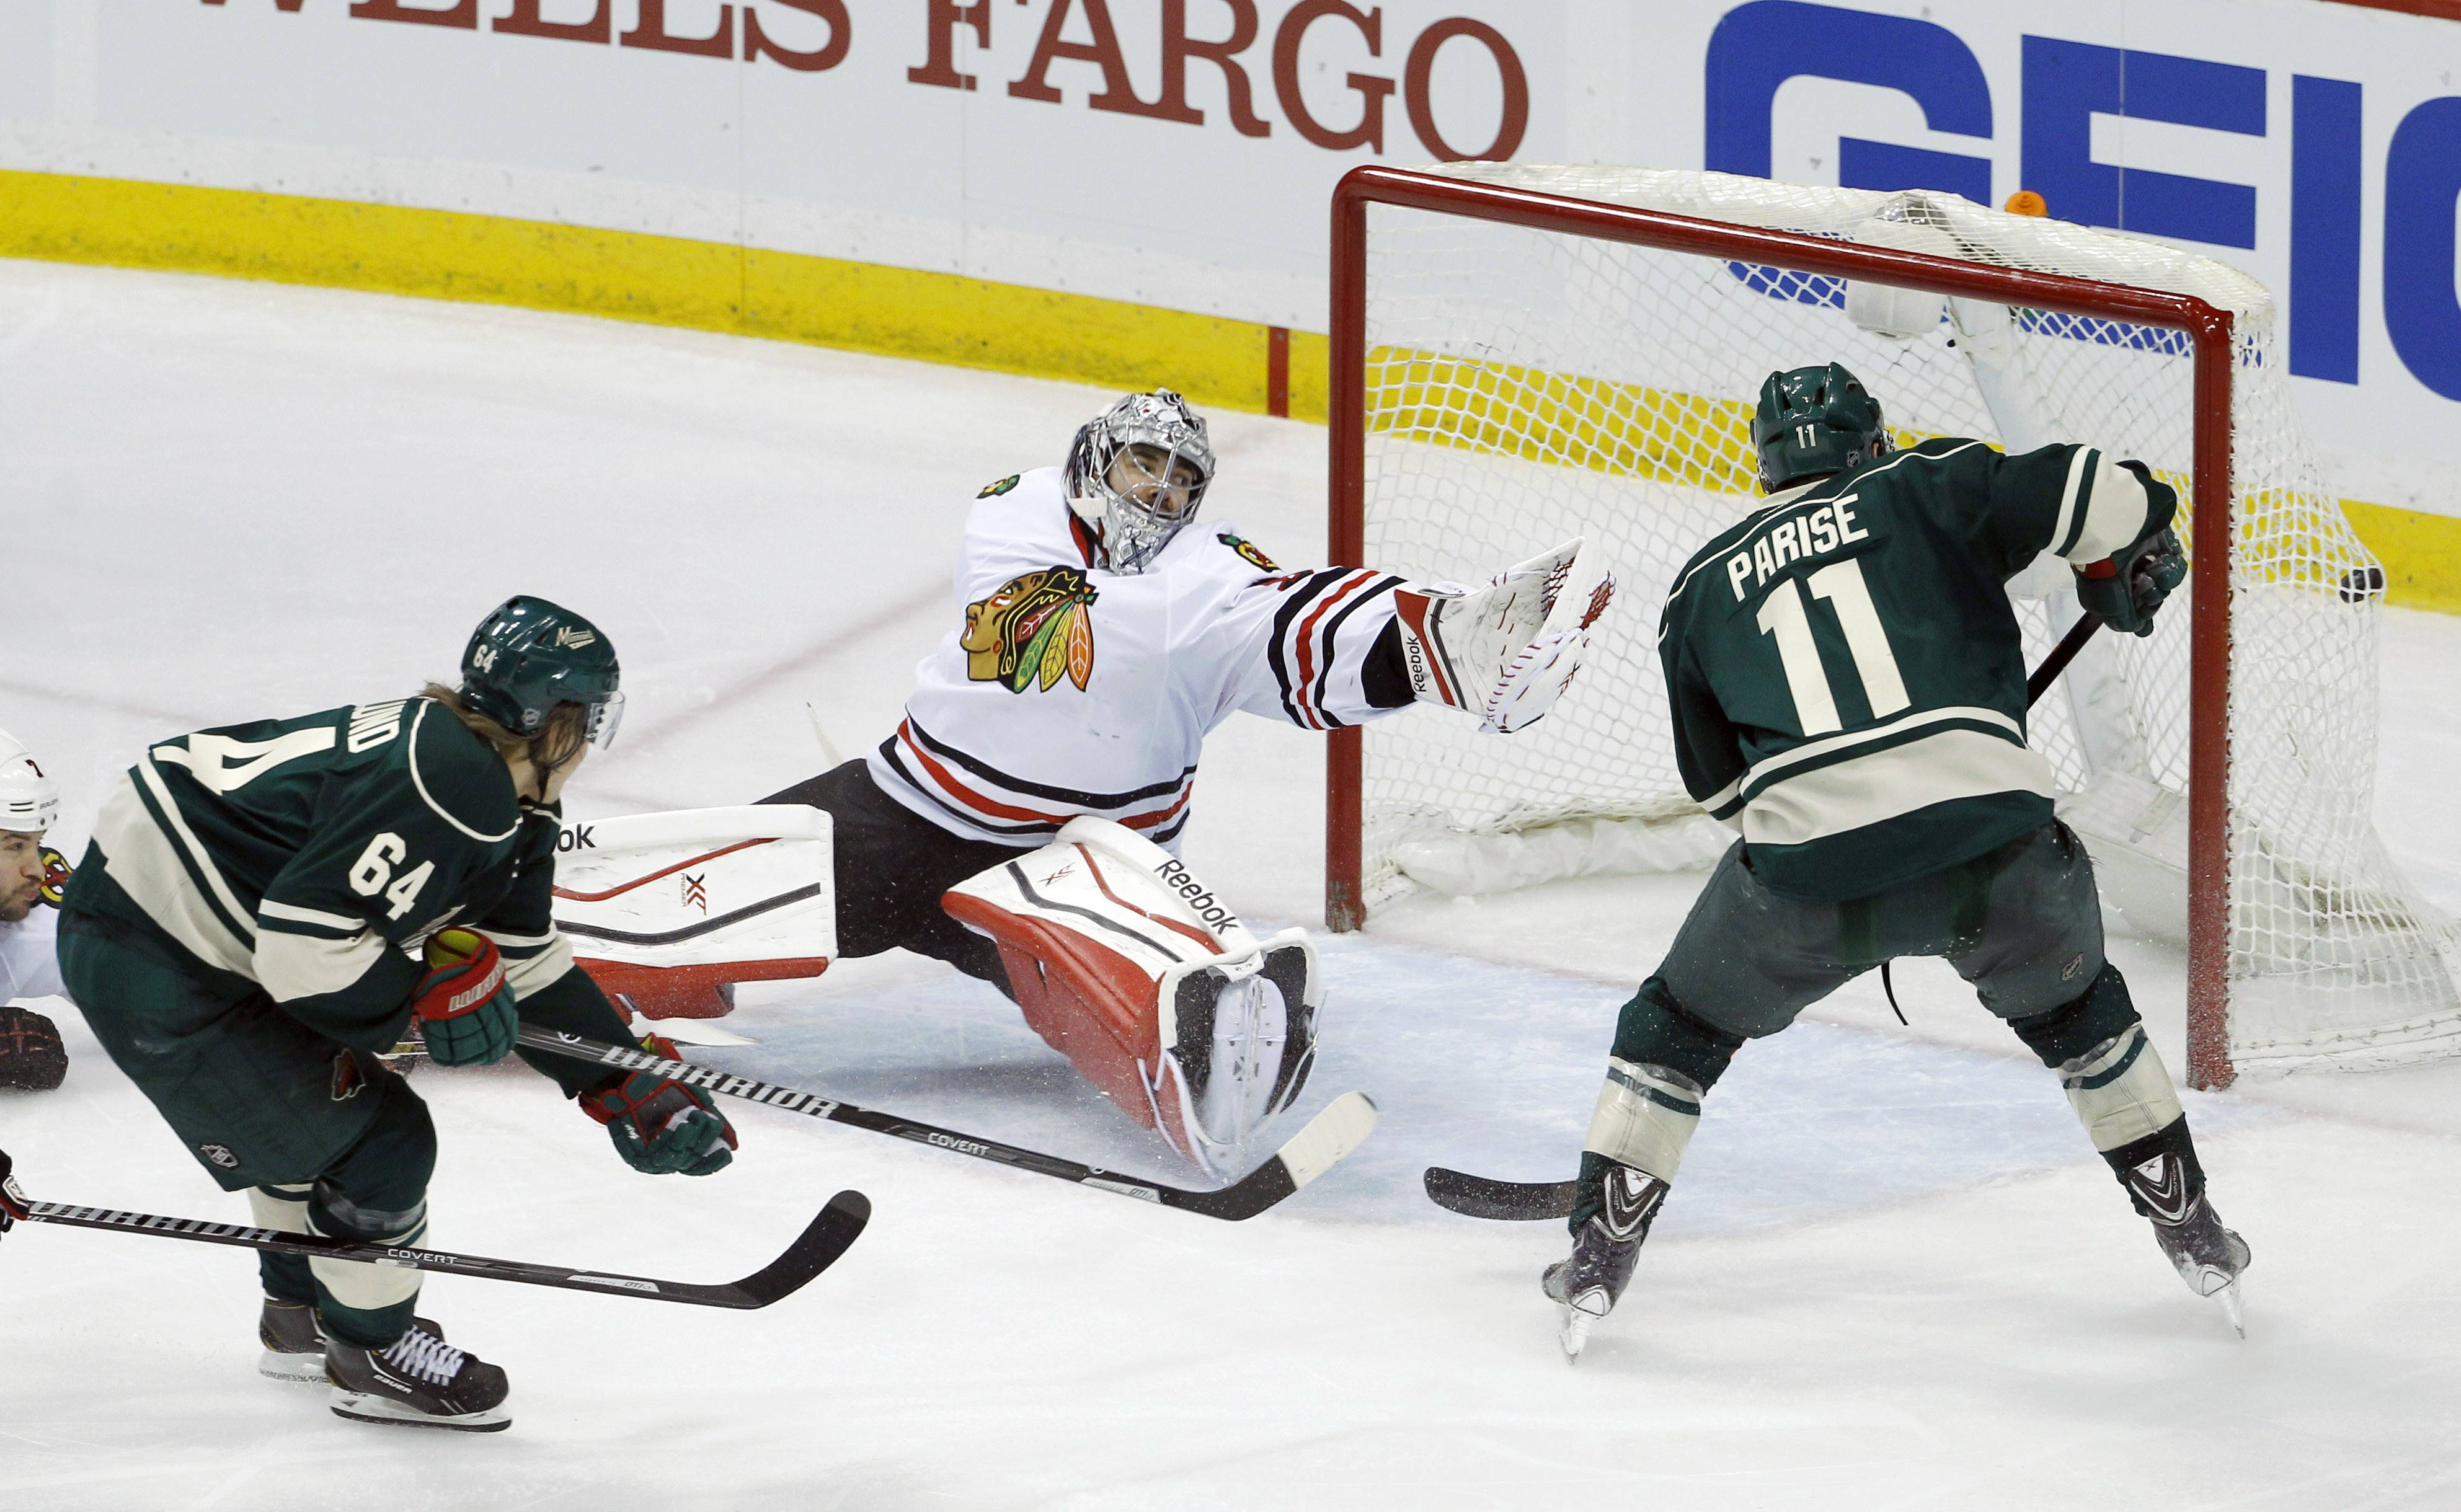 A shot by Minnesota Wild center Mikael Granlund (64 gets past Blackhawks goalie Corey Crawford and Wild left wing Zach Parise (11) during the third period of Game 3 Tuesday in St. Paul, Minn. The Wild won 4-0.